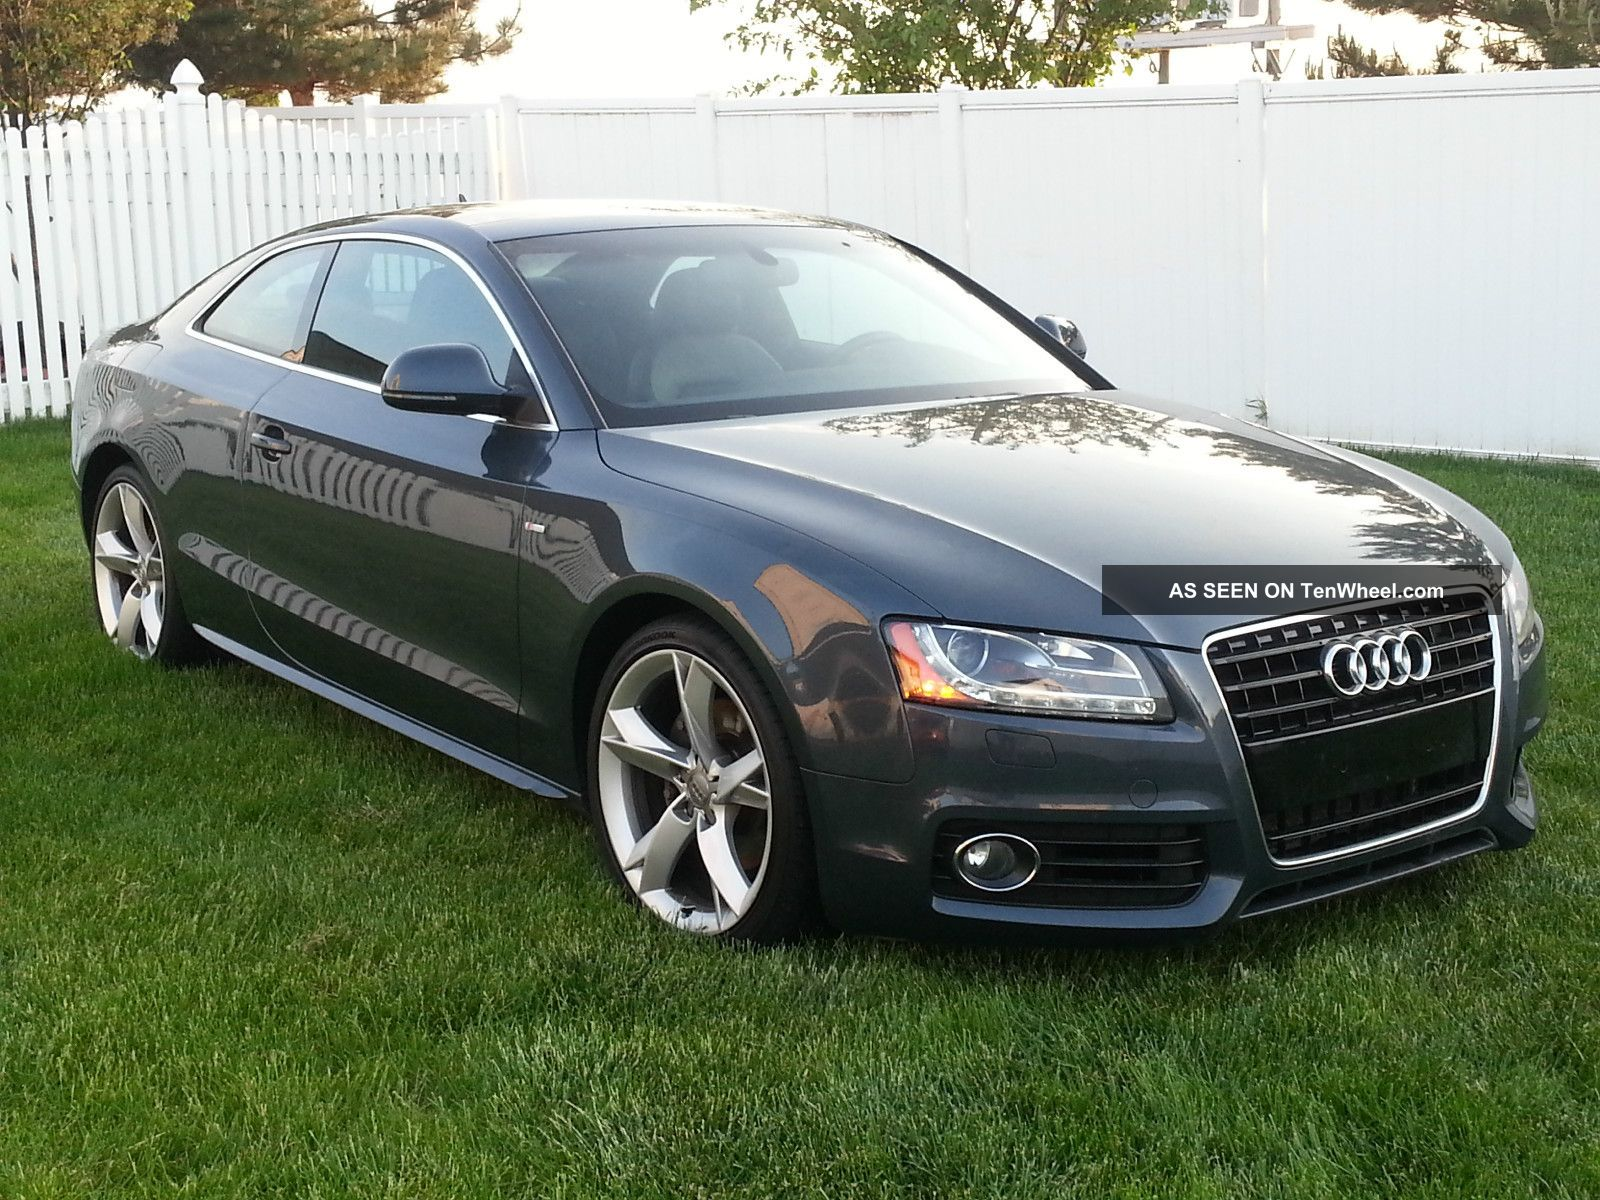 2009 audi a5 quattro base coupe 2 door 3 2l. Black Bedroom Furniture Sets. Home Design Ideas